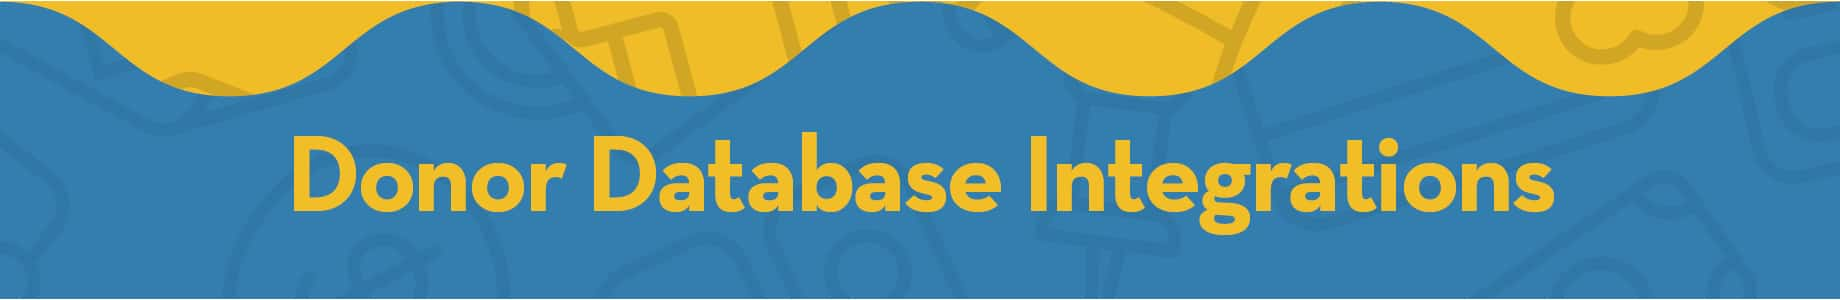 Donor Database Integrations